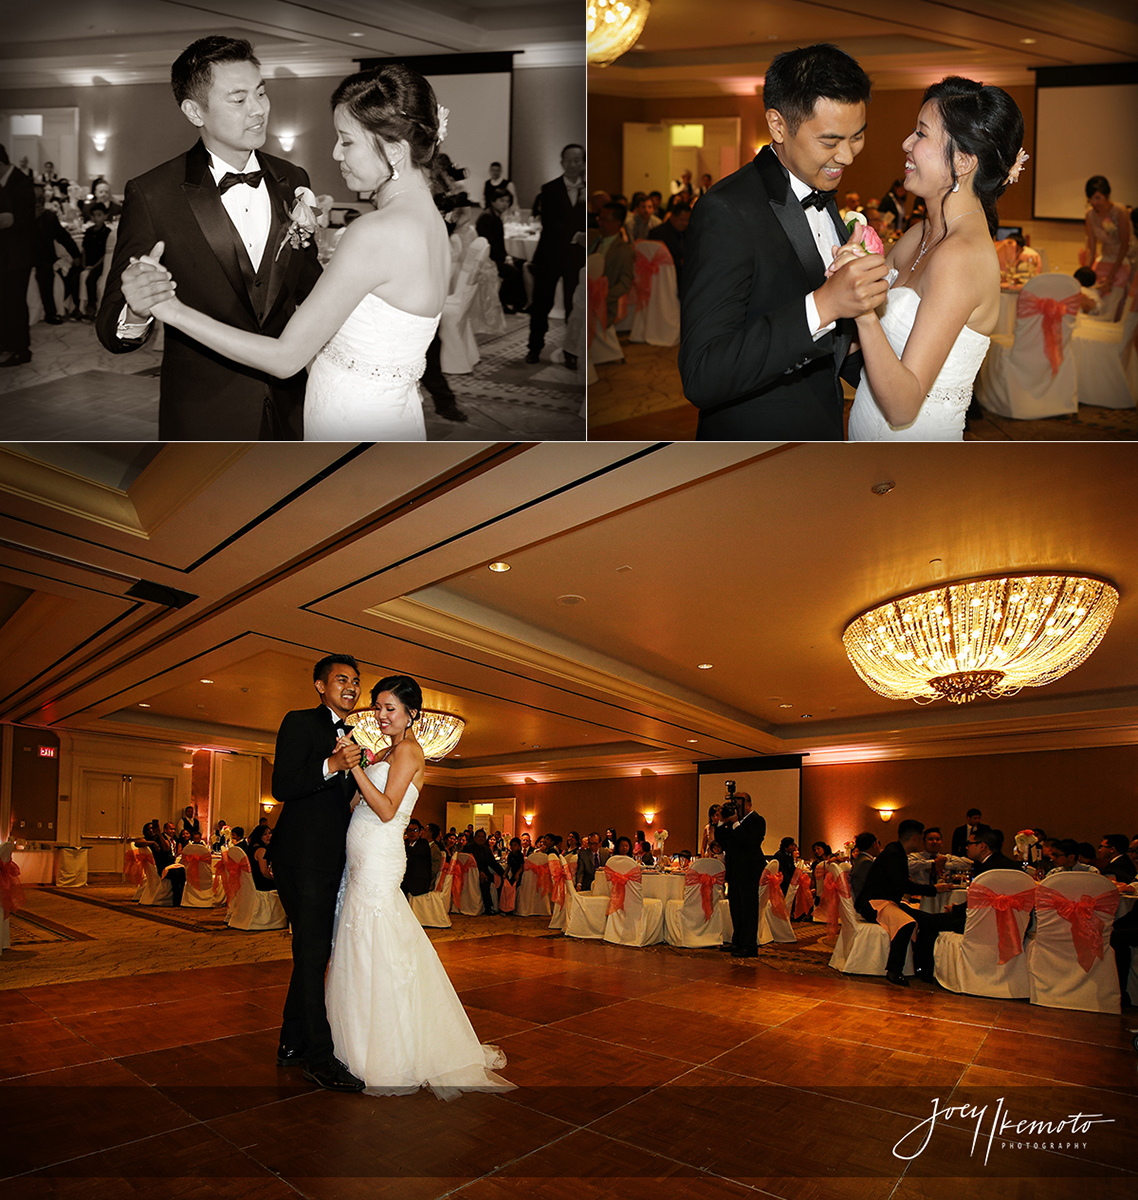 St-James-Church-and-Double-Tree-Torrance-Wedding_0028_Blog-Collage-1470959924666